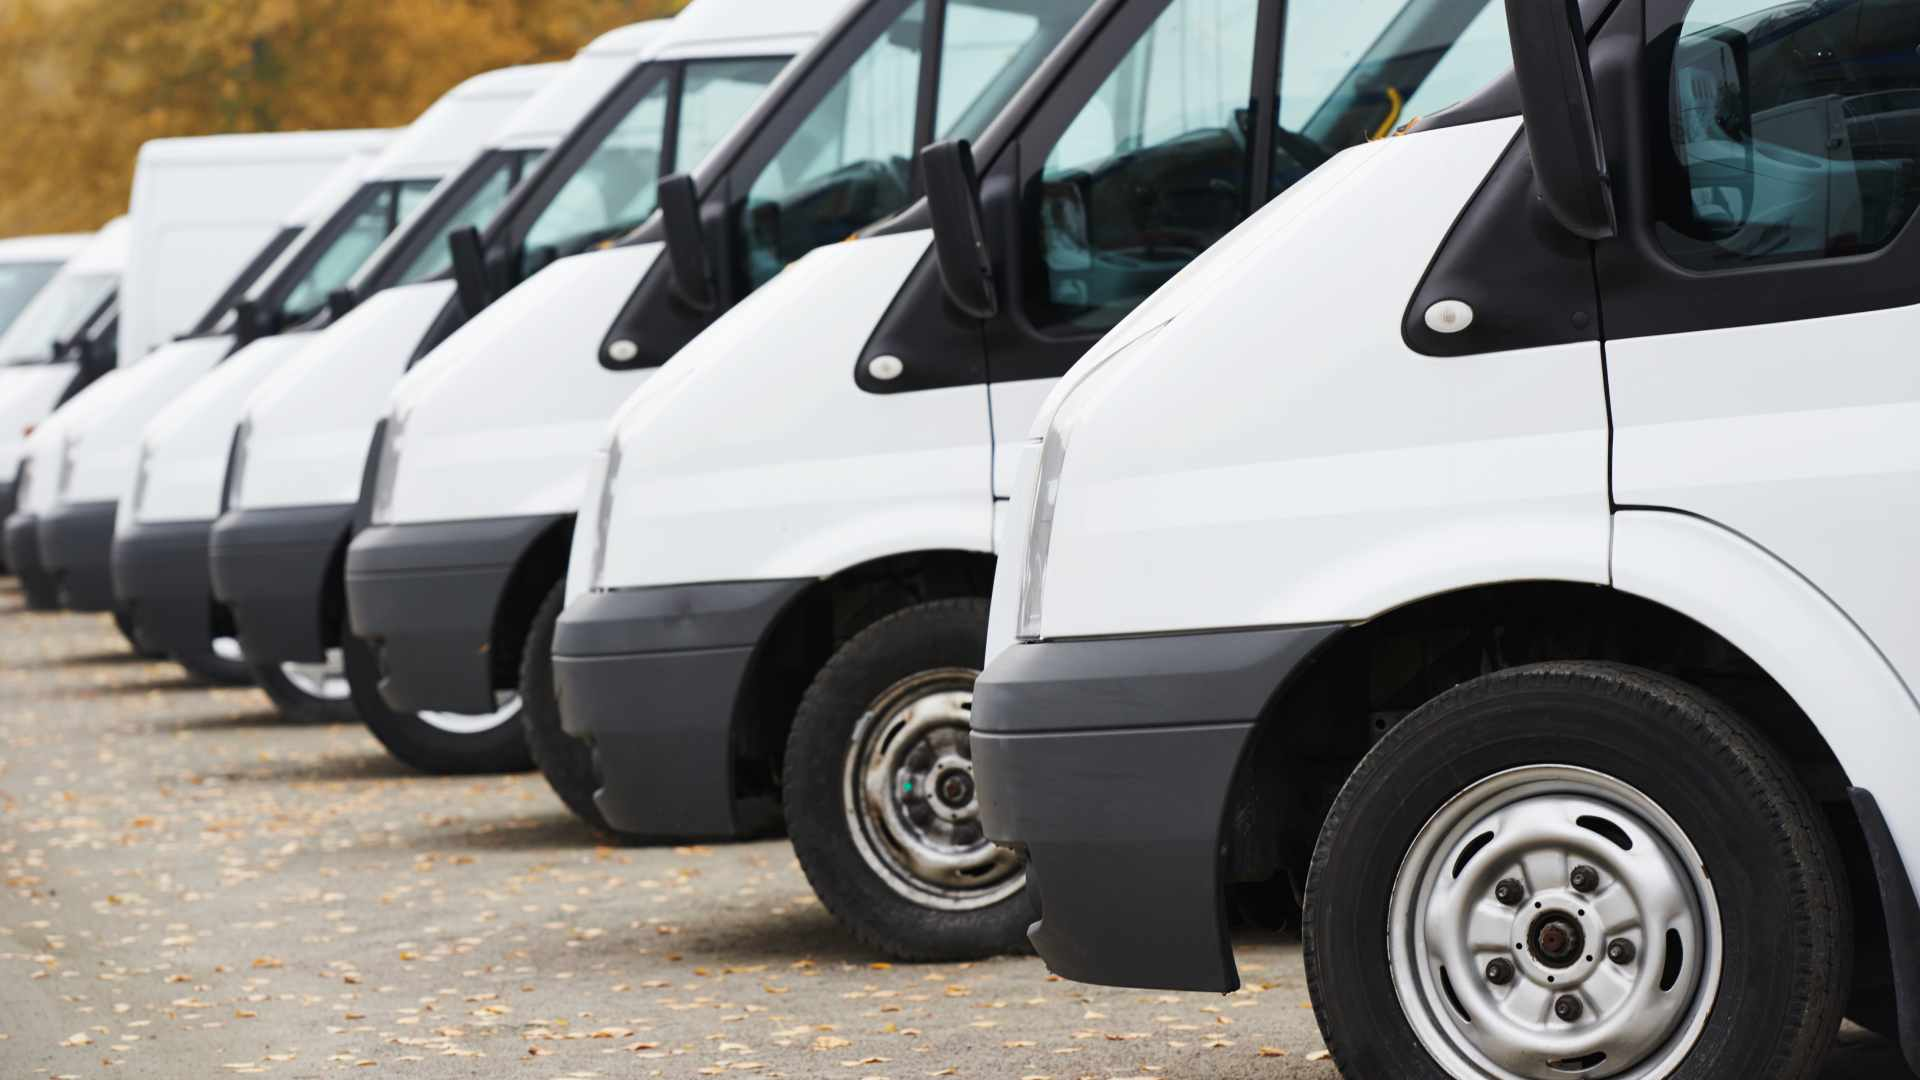 Commercial delivery vans in row at parking place